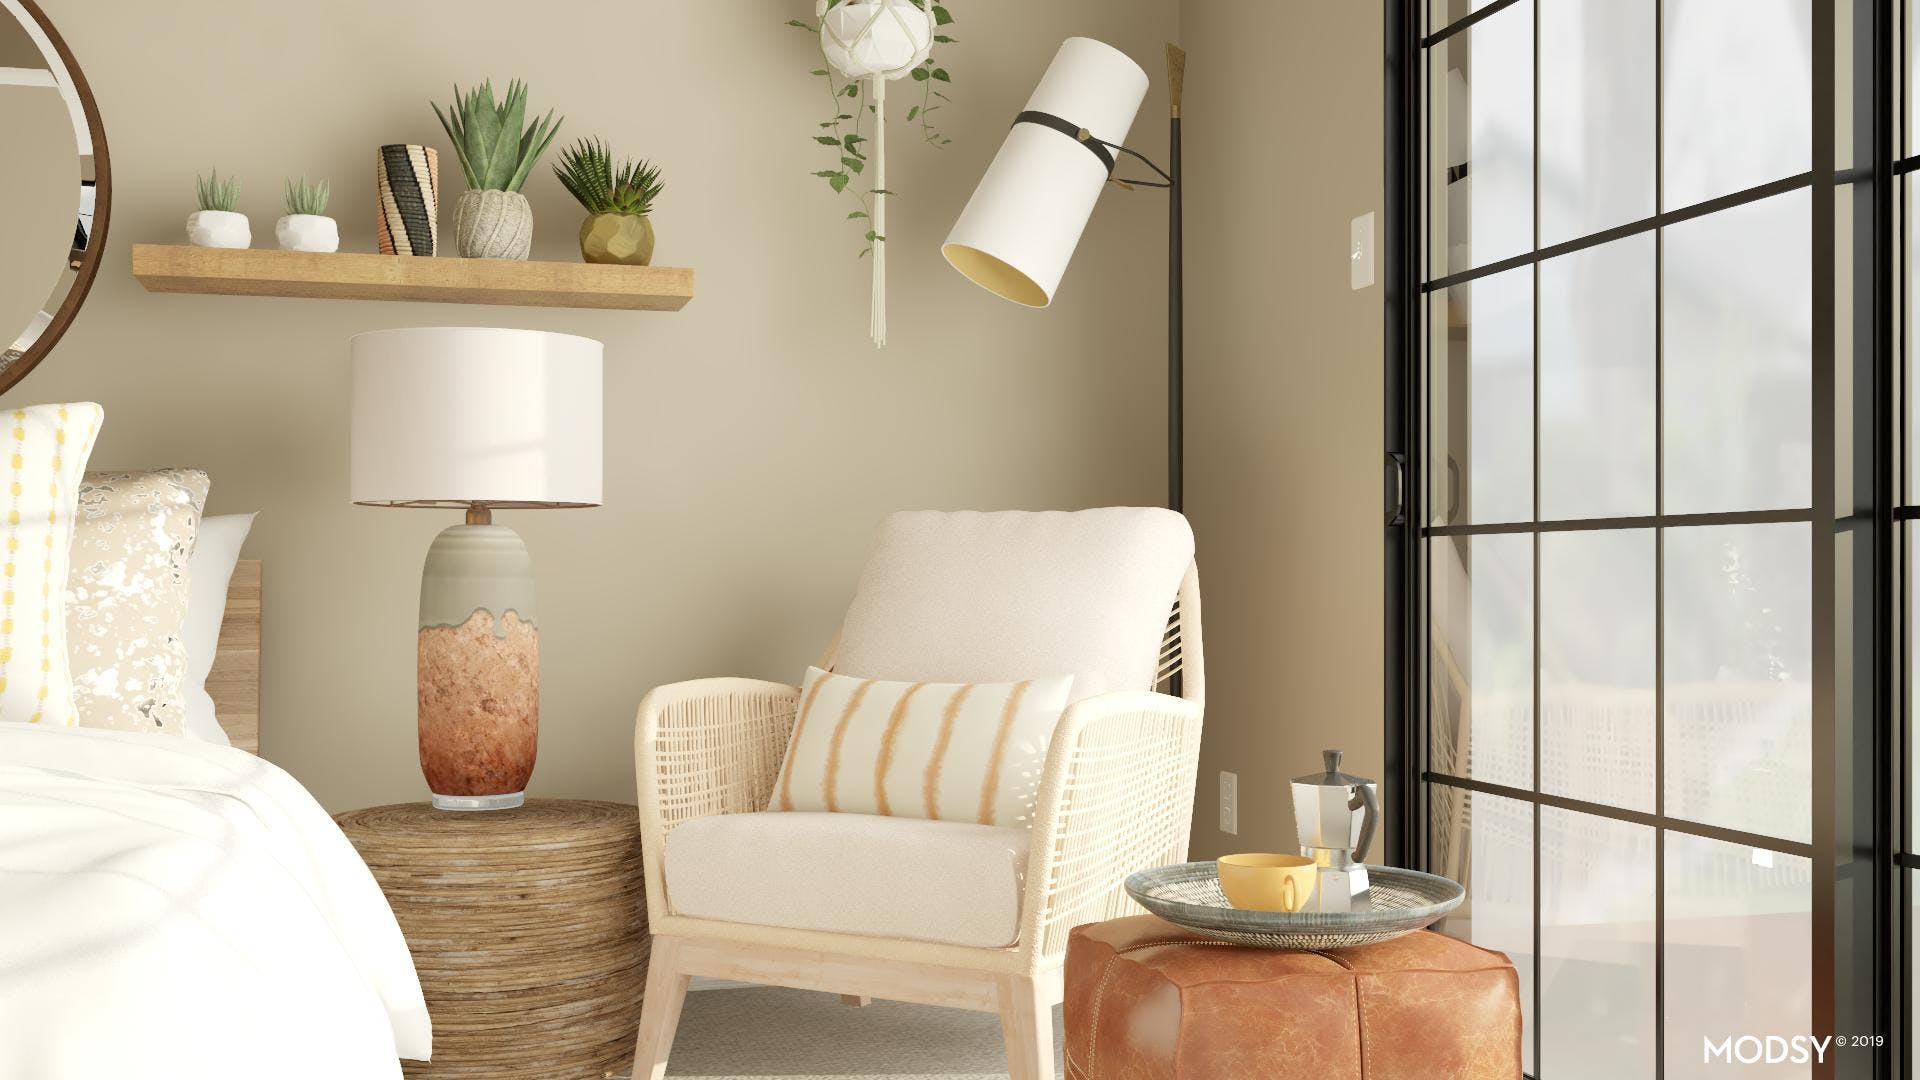 Morning Coffee Space In Earth Tones